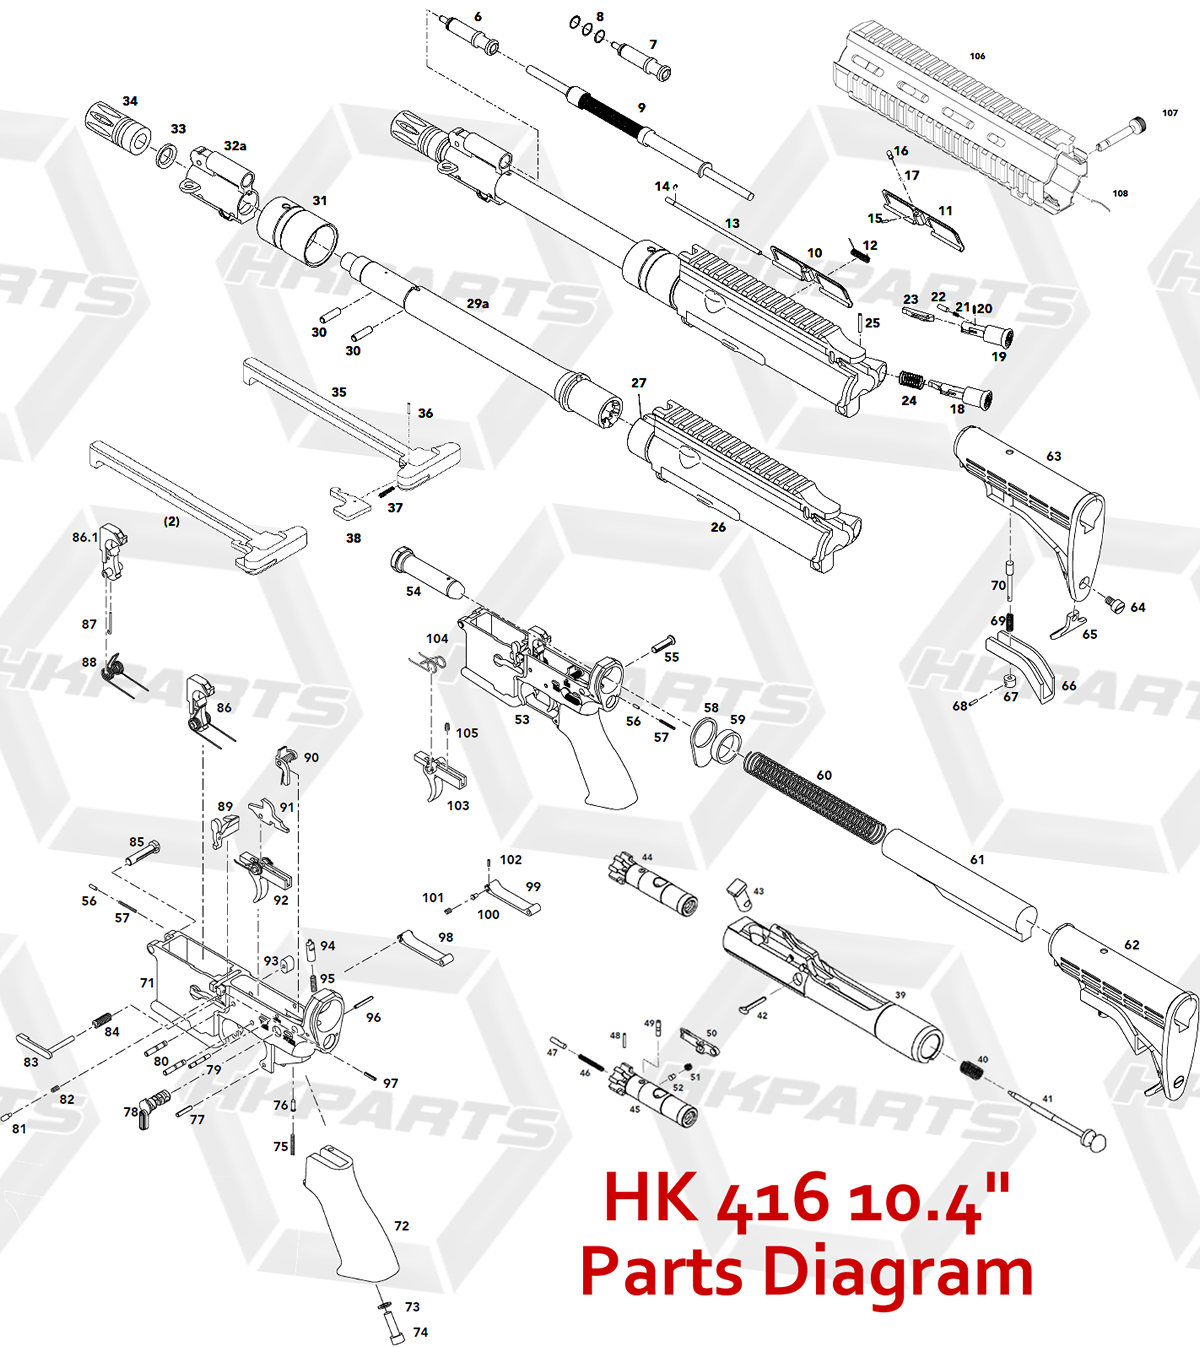 Hk416 Disassembly